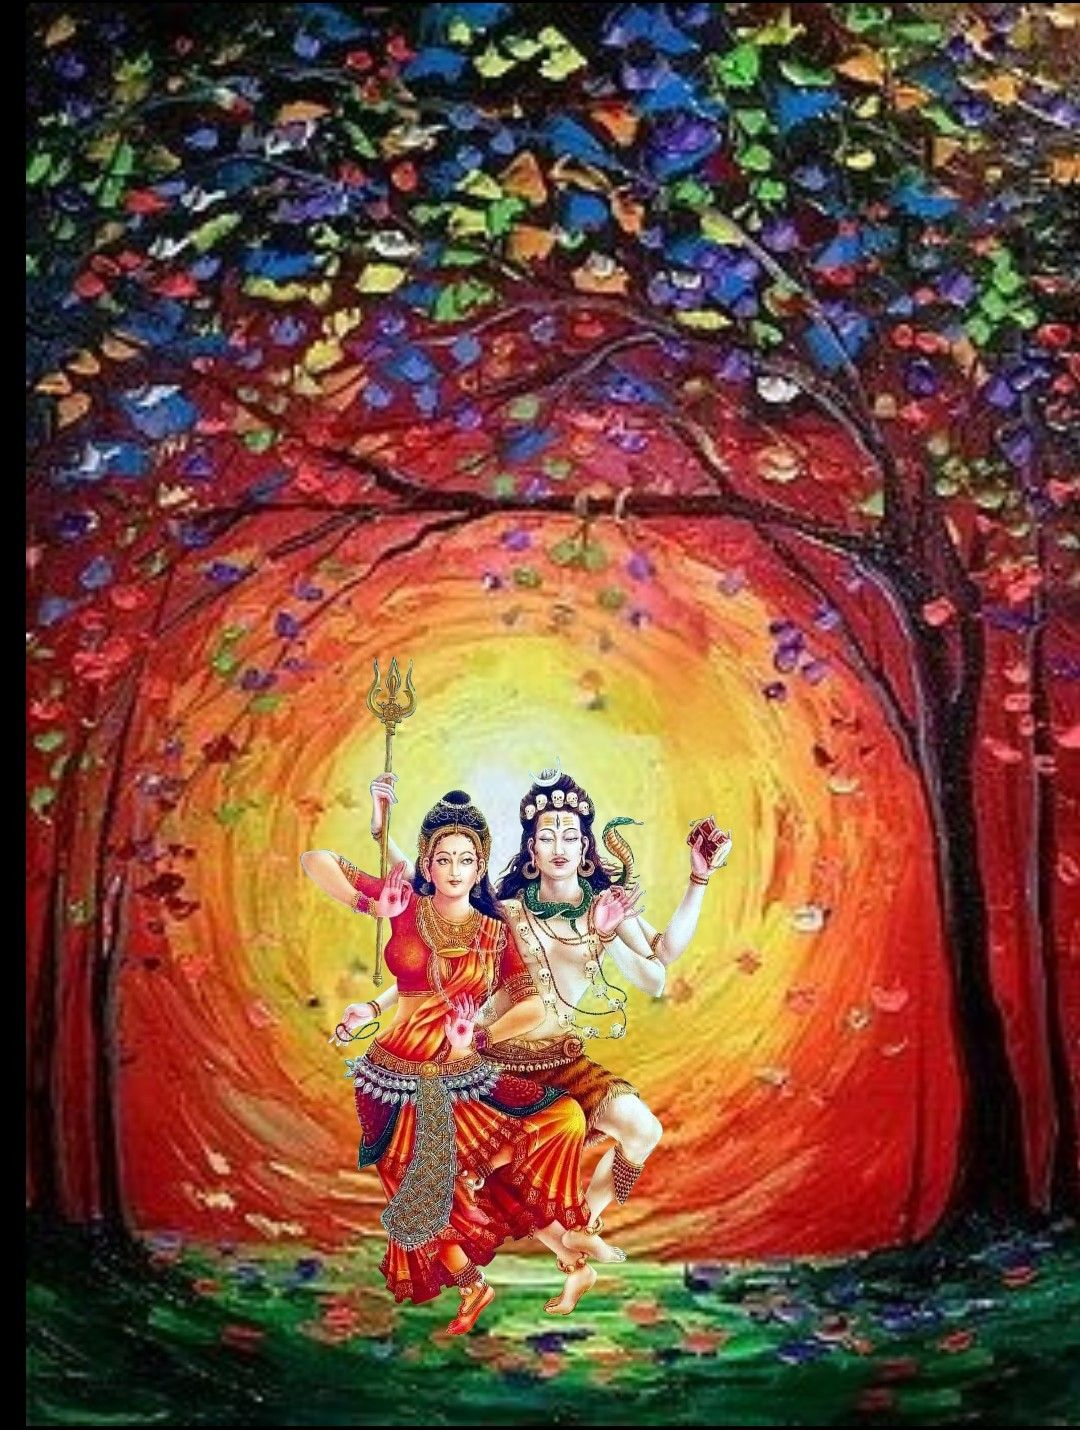 pic of lord shiva and parvati